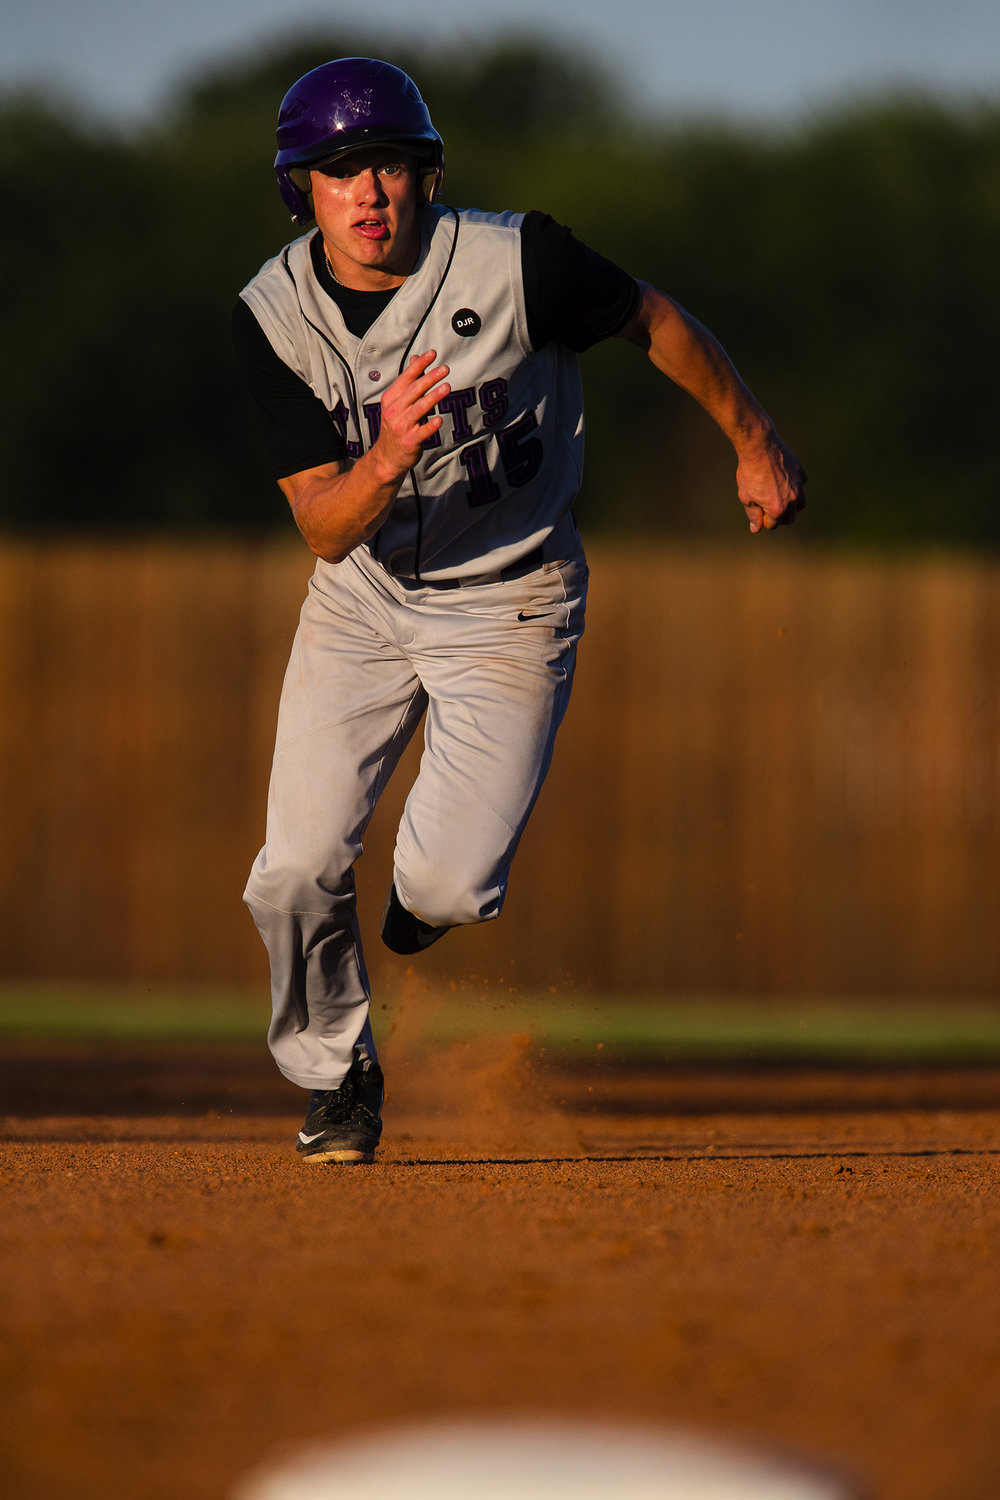 Williamsville's Cody Womack sprints for third base during the Baseball Classic at Claude Kracik Field Tuesday, June 13, 2017.  [Ted Schurter/The State Journal-Register]